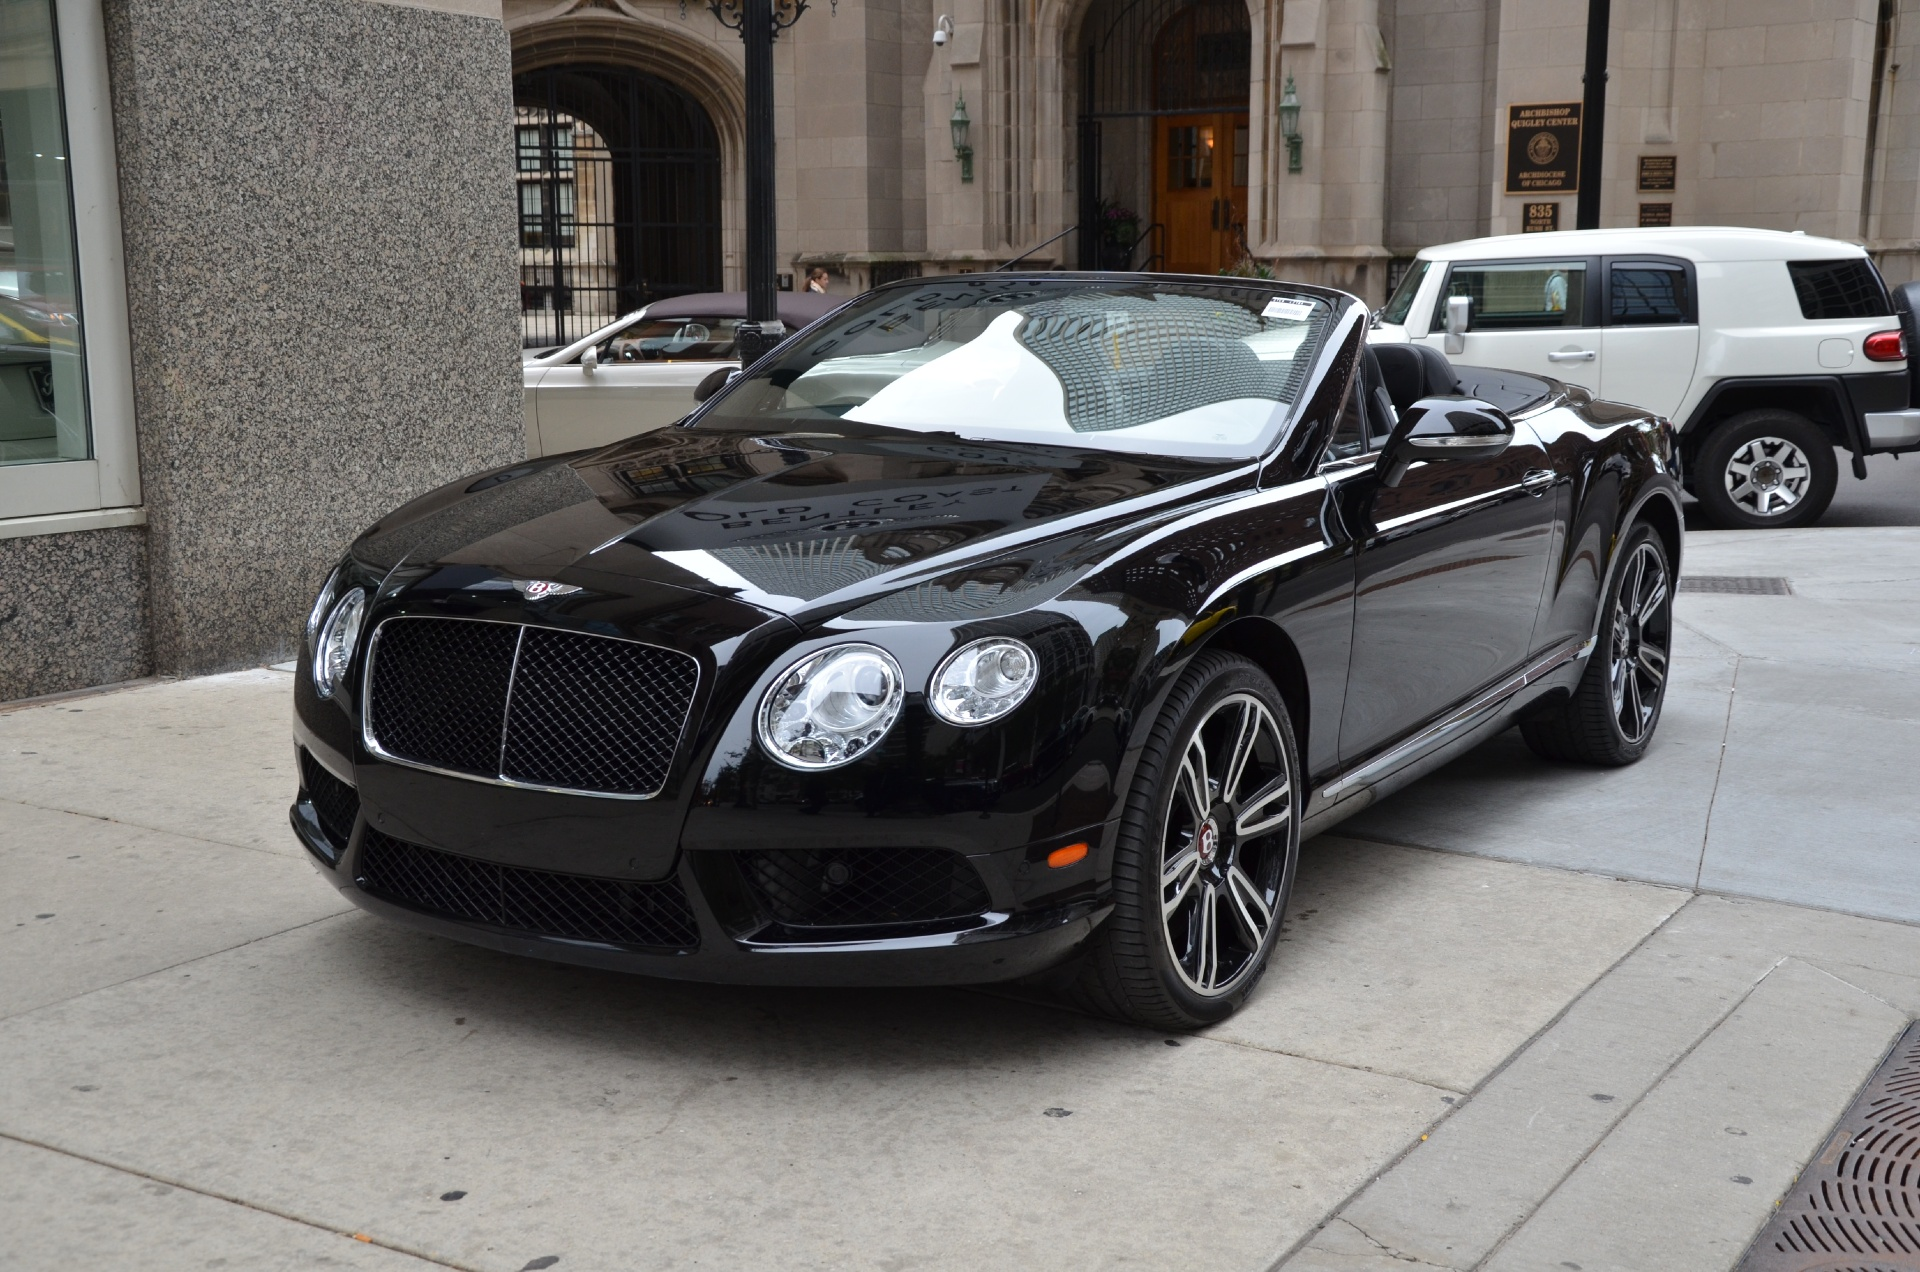 2014 bentley continental gtc v8 used bentley used rolls royce. Cars Review. Best American Auto & Cars Review